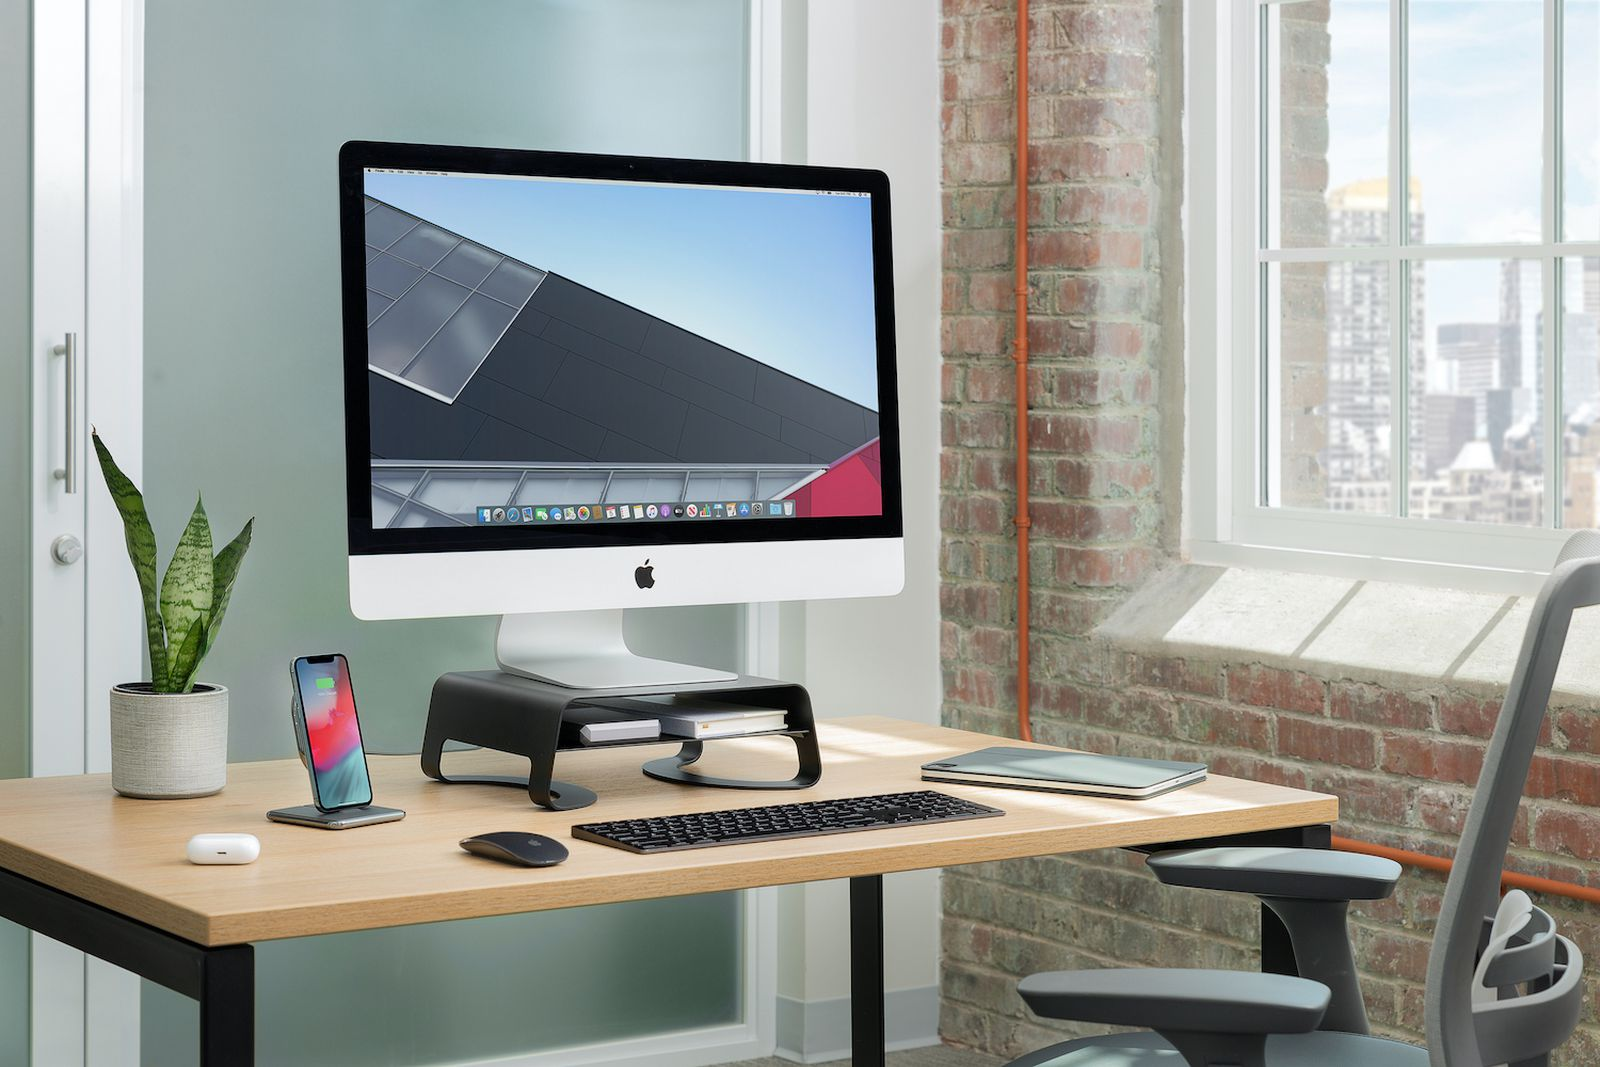 photo of Review: Twelve South's 'Curve Riser' iMac Stand Can Help Declutter Your Workspace, But Lack of Adjustable Height Hinders… image